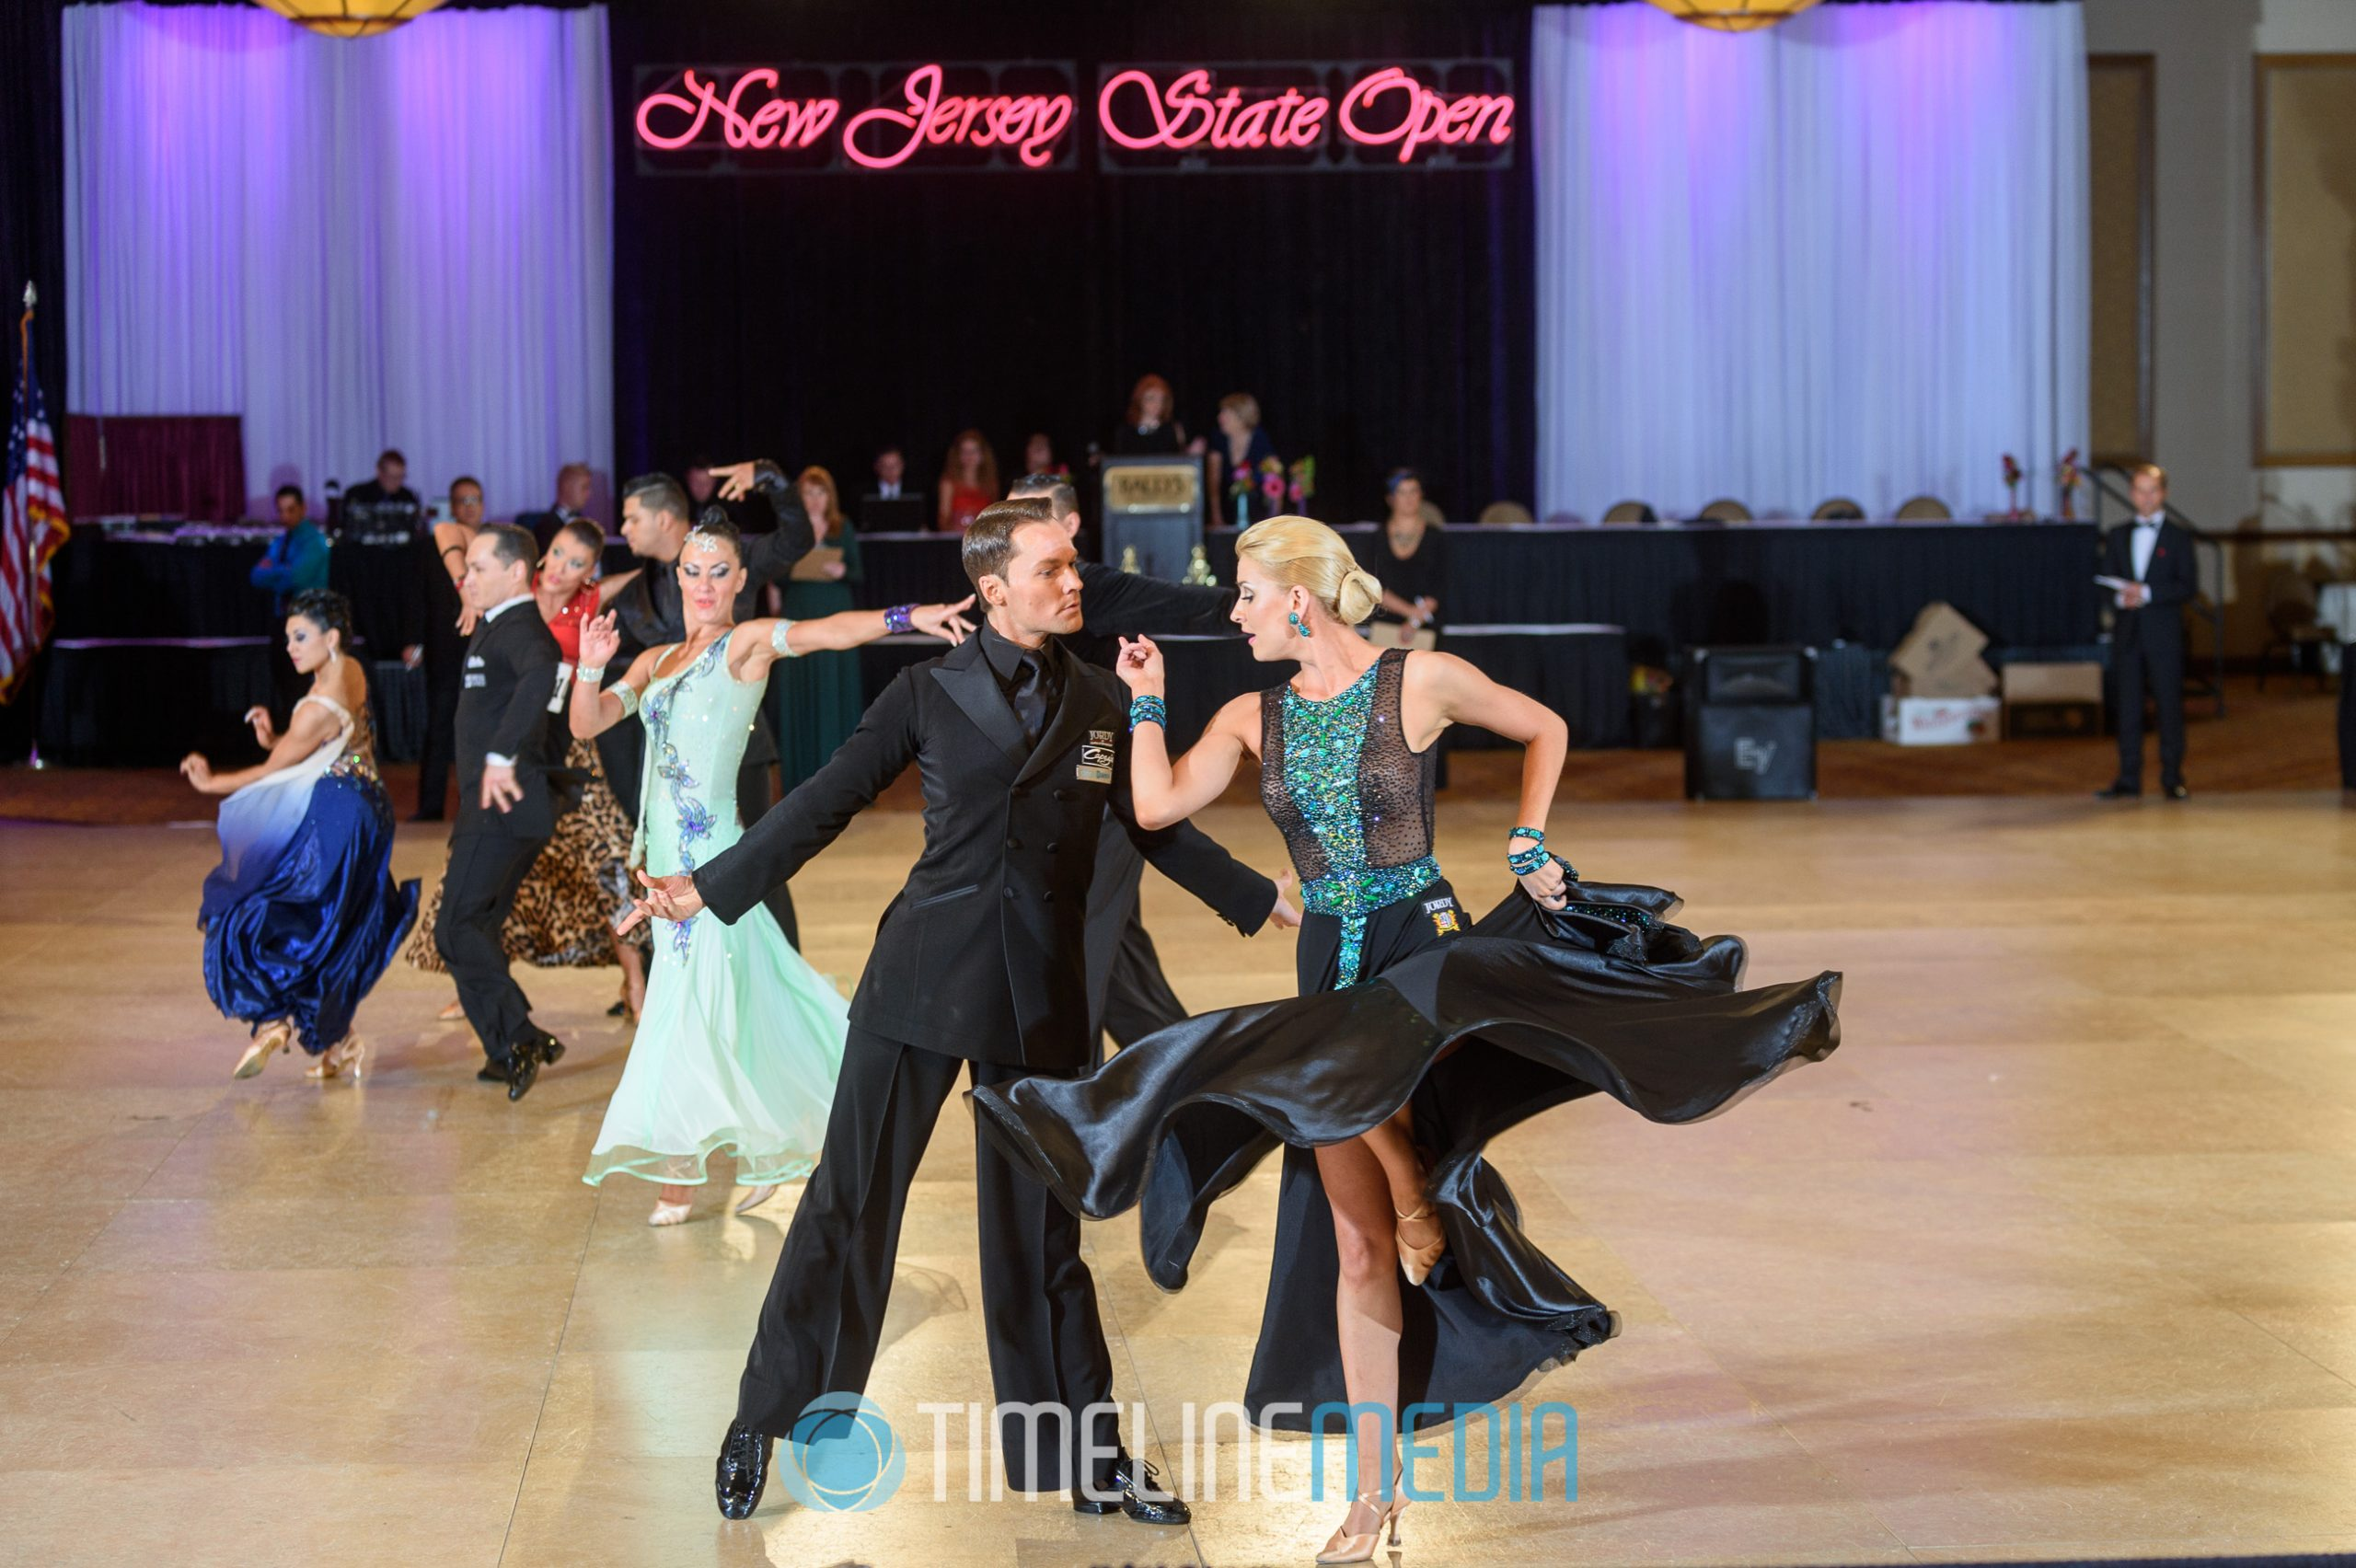 2015 New Jersey State Open professional competition ©TimeLine Media